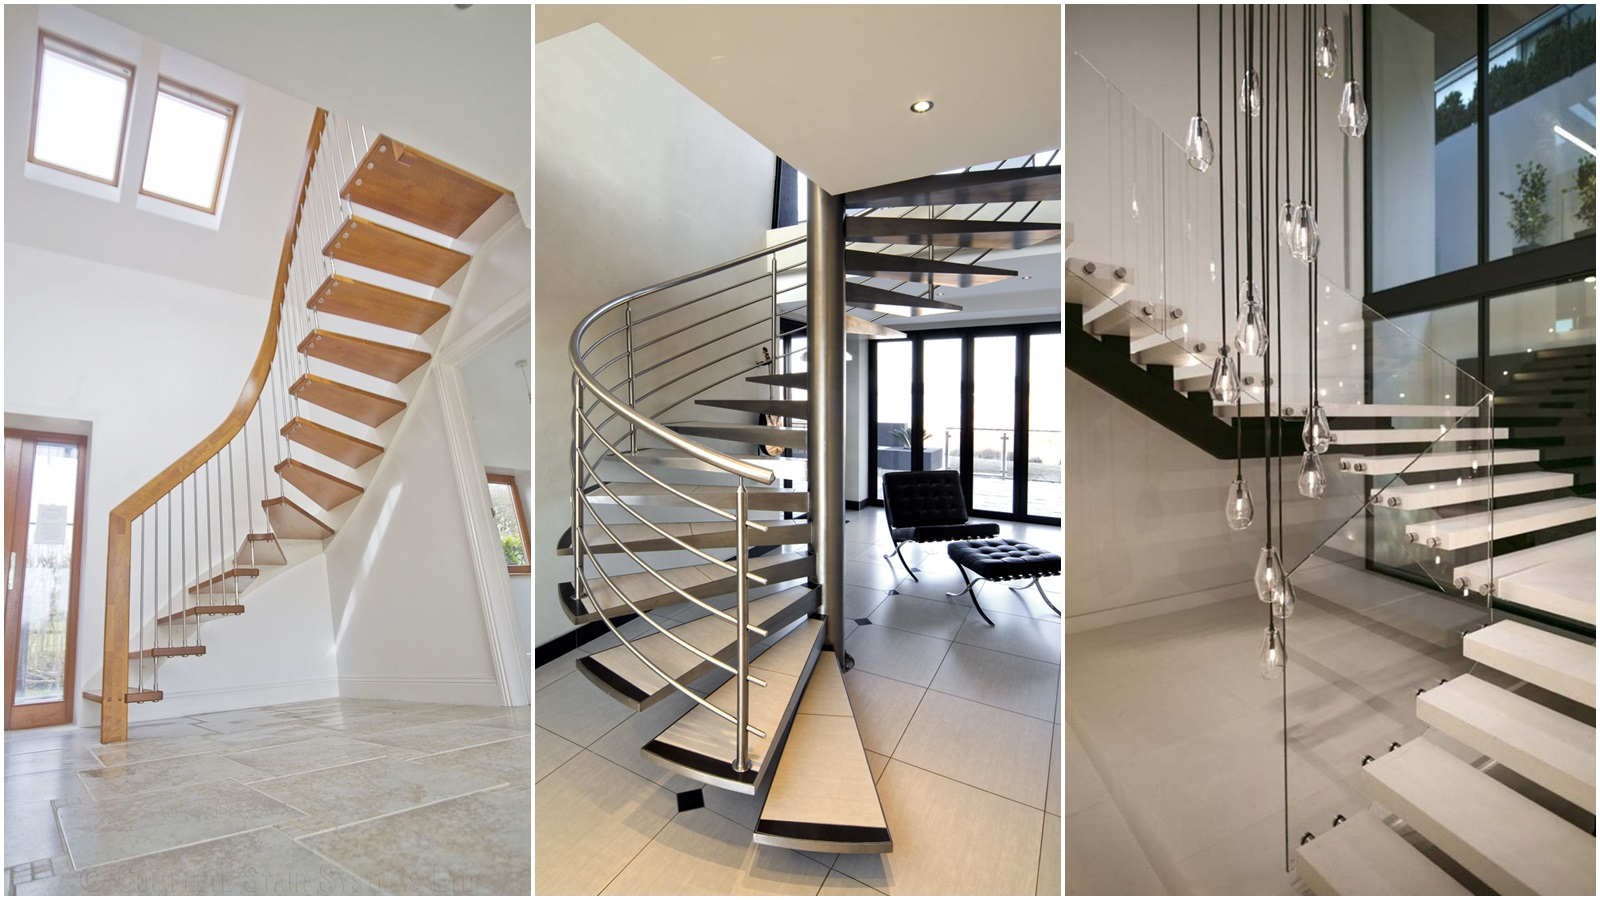 Interior Staircase Ideas All Types Of Modern Stairs Designs And Staircase Railing 2019 Catalog